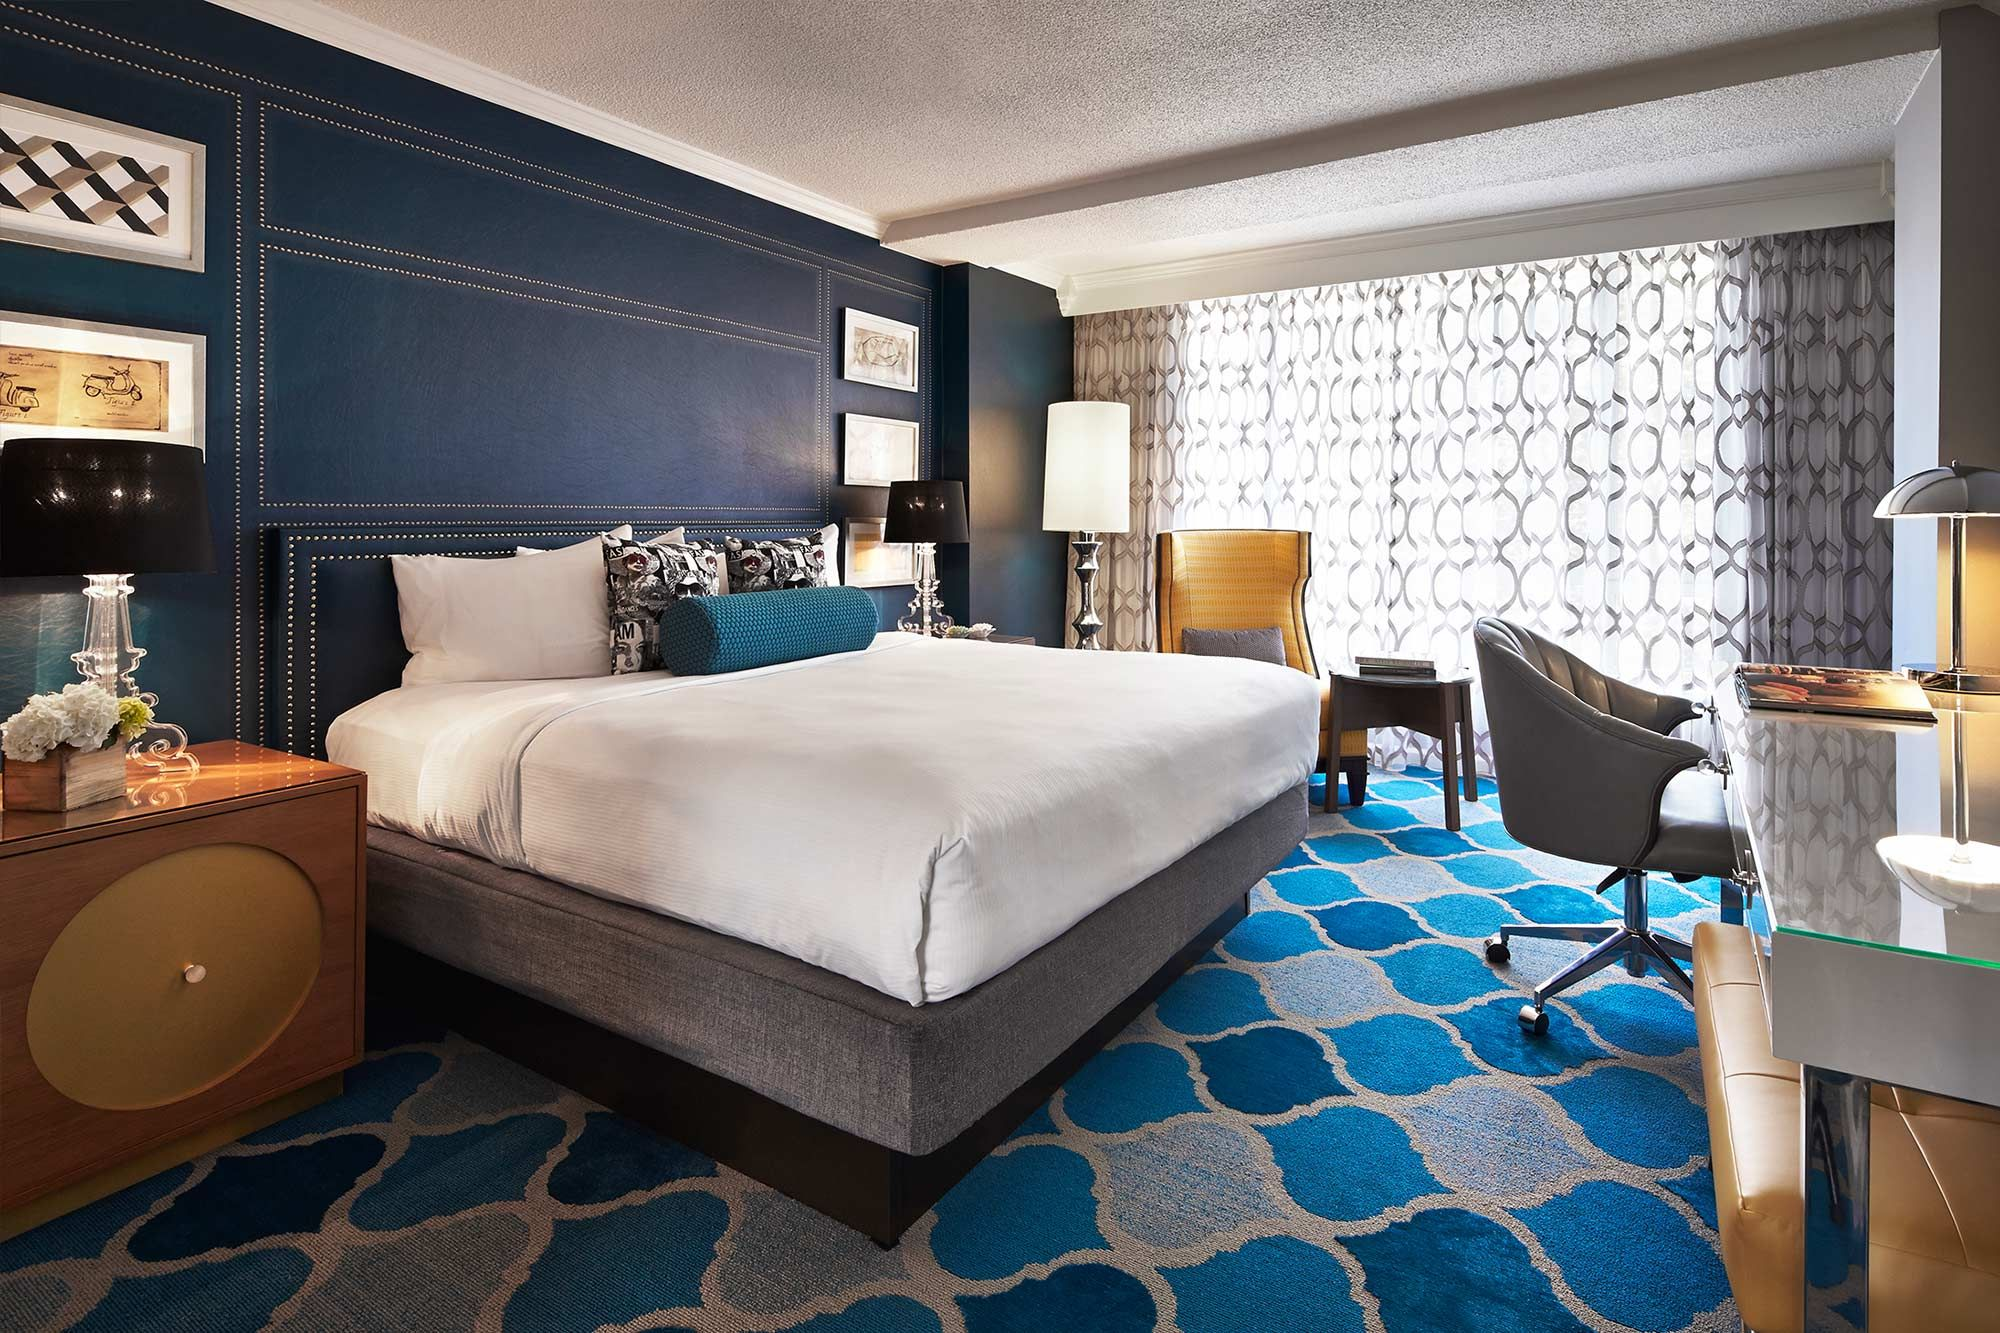 Washington Dc Hotel Deals Emby Row Special Offers Dupont Circle